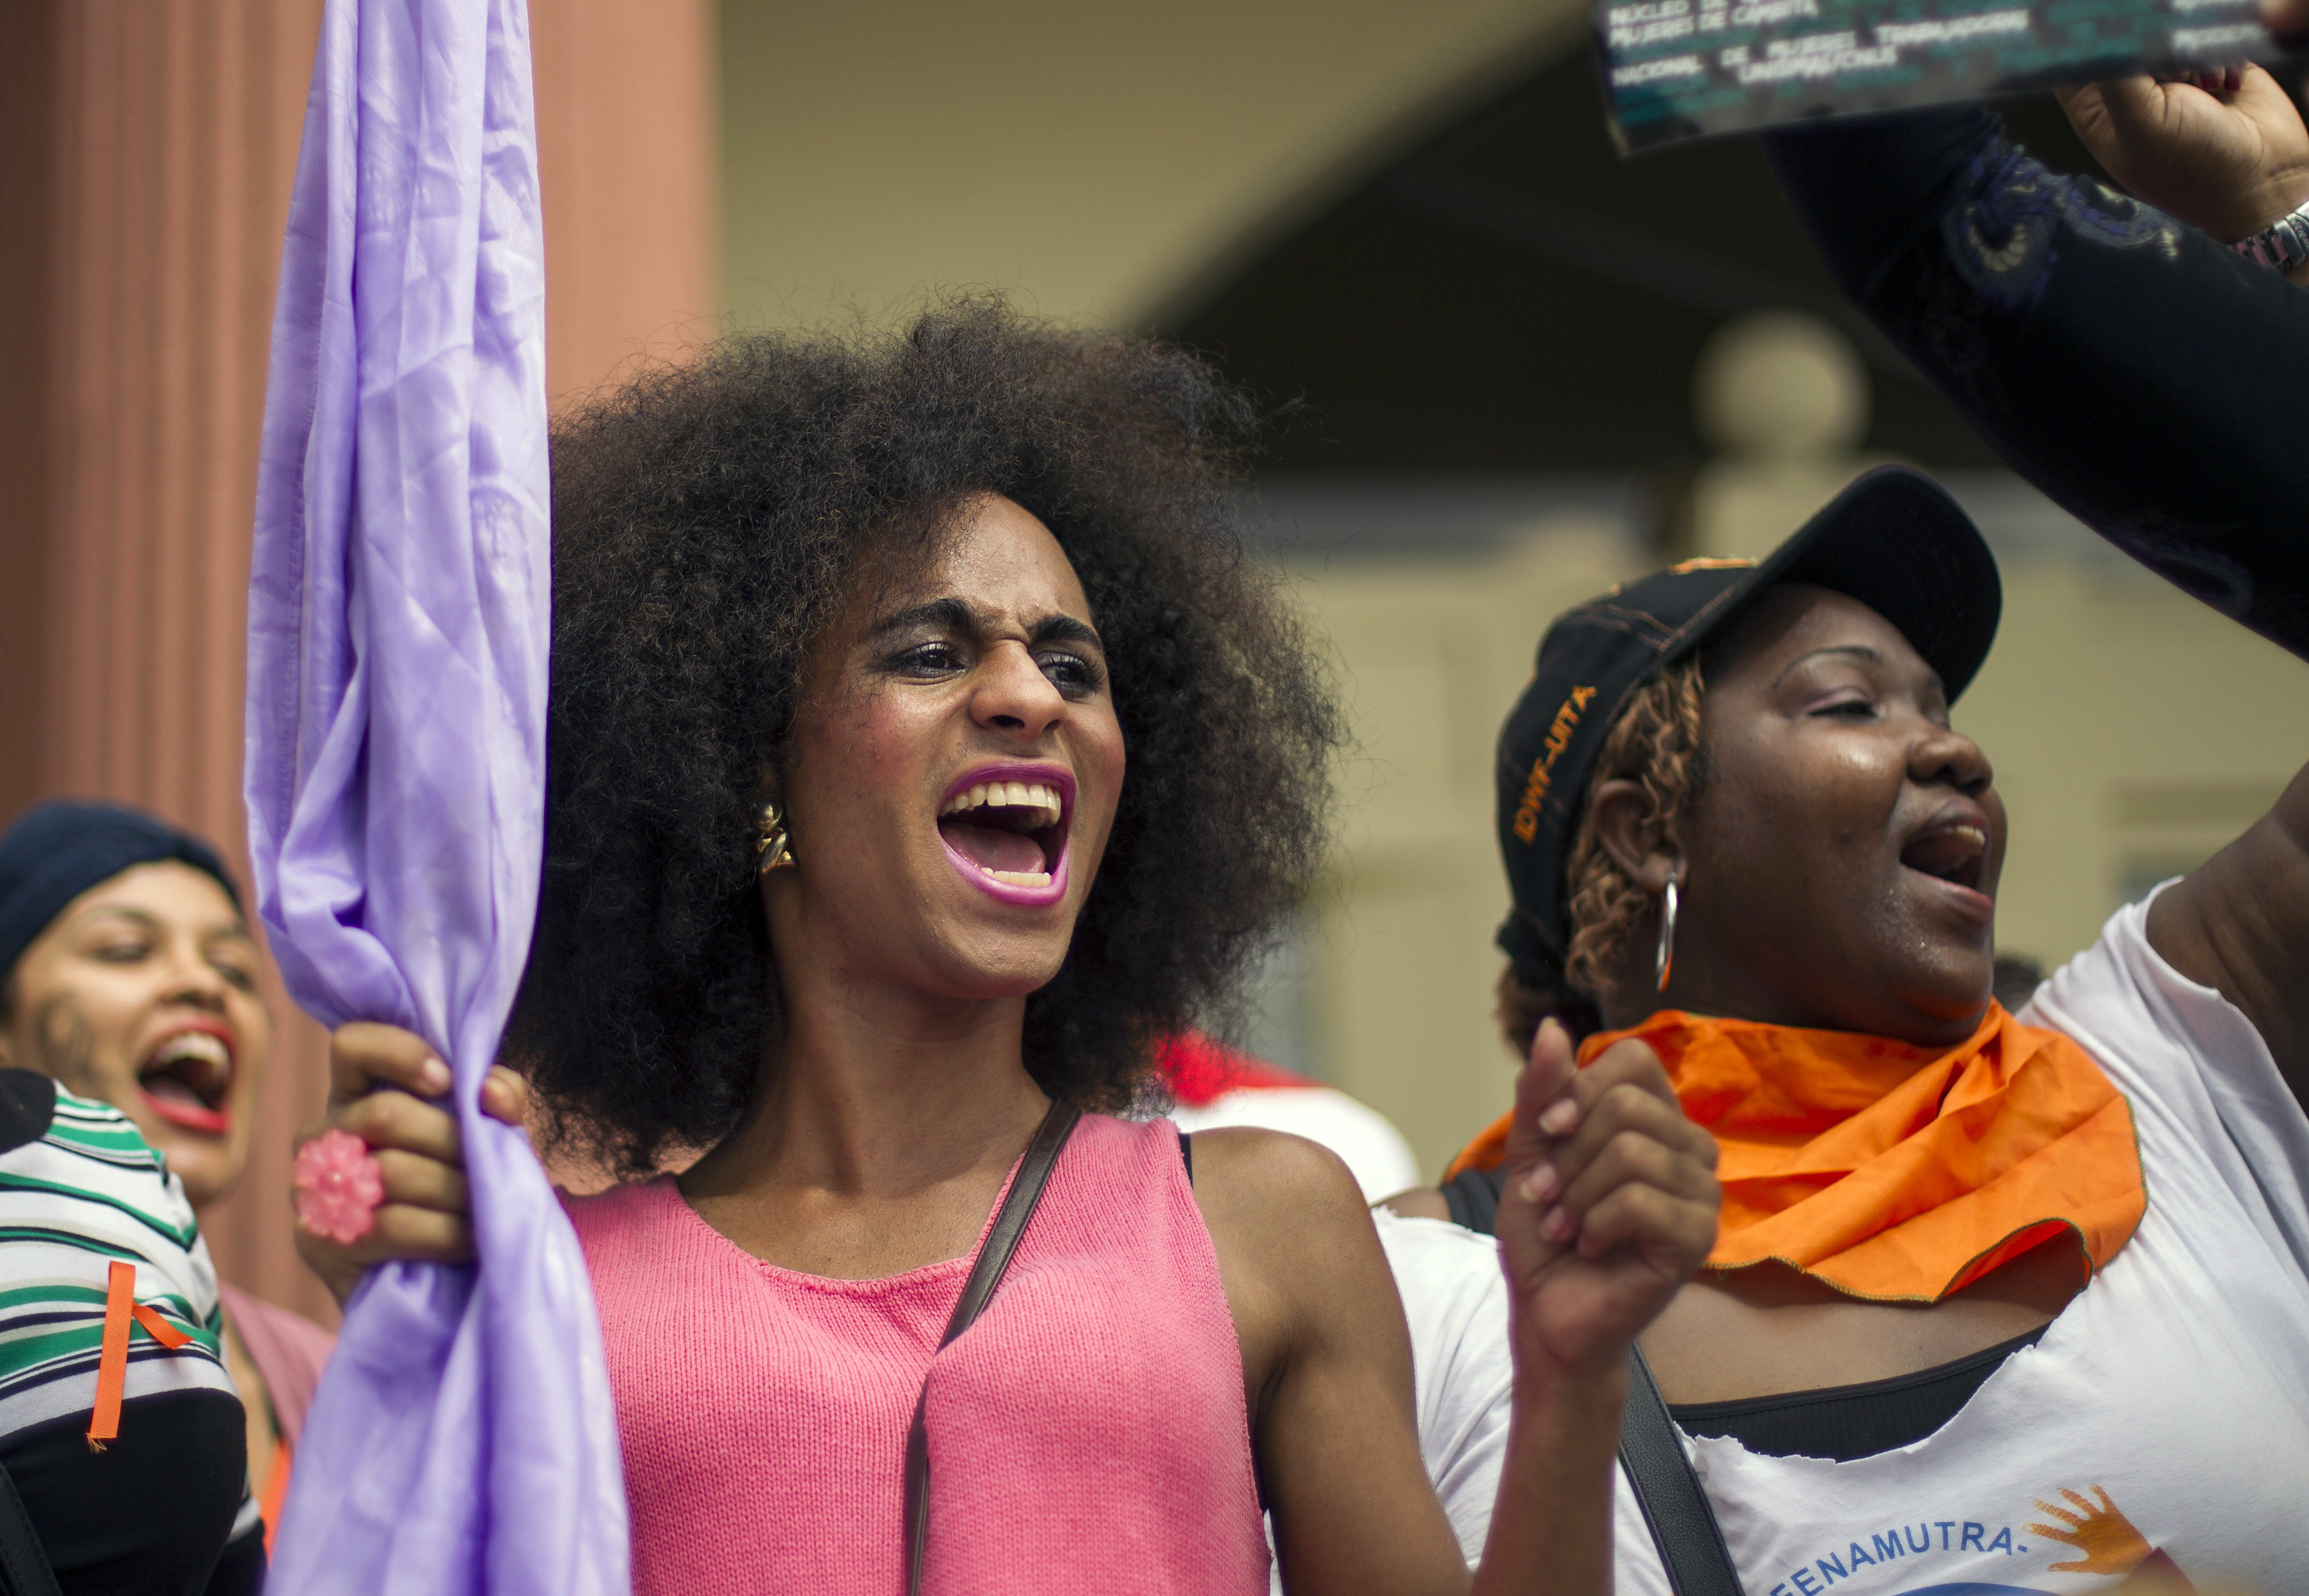 Women shout slogans during a march to commemorate UN's International Day for the Elimination of Violence Against Women, on November 25, 2014 in Santo Domingo, Dominican Republic. (Photo: ERIKA SANTELICES/AFP/Getty Images)